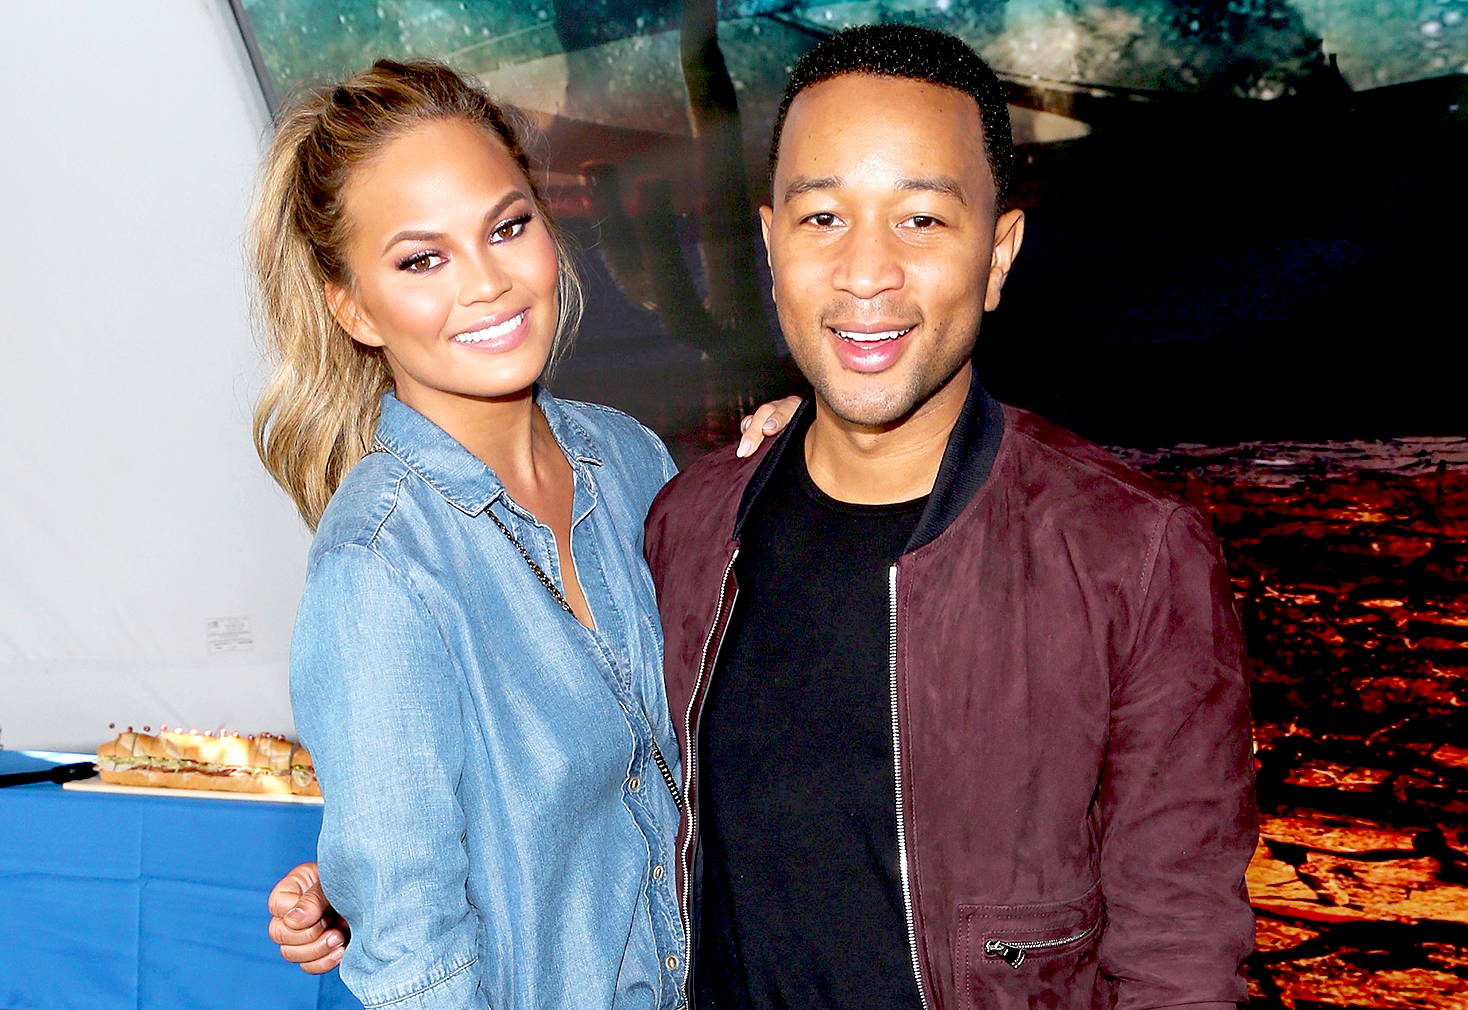 Chrissy Teigen and John Legend Play Nerdy 'Math Off' Game on Italian Vacation: Watch!